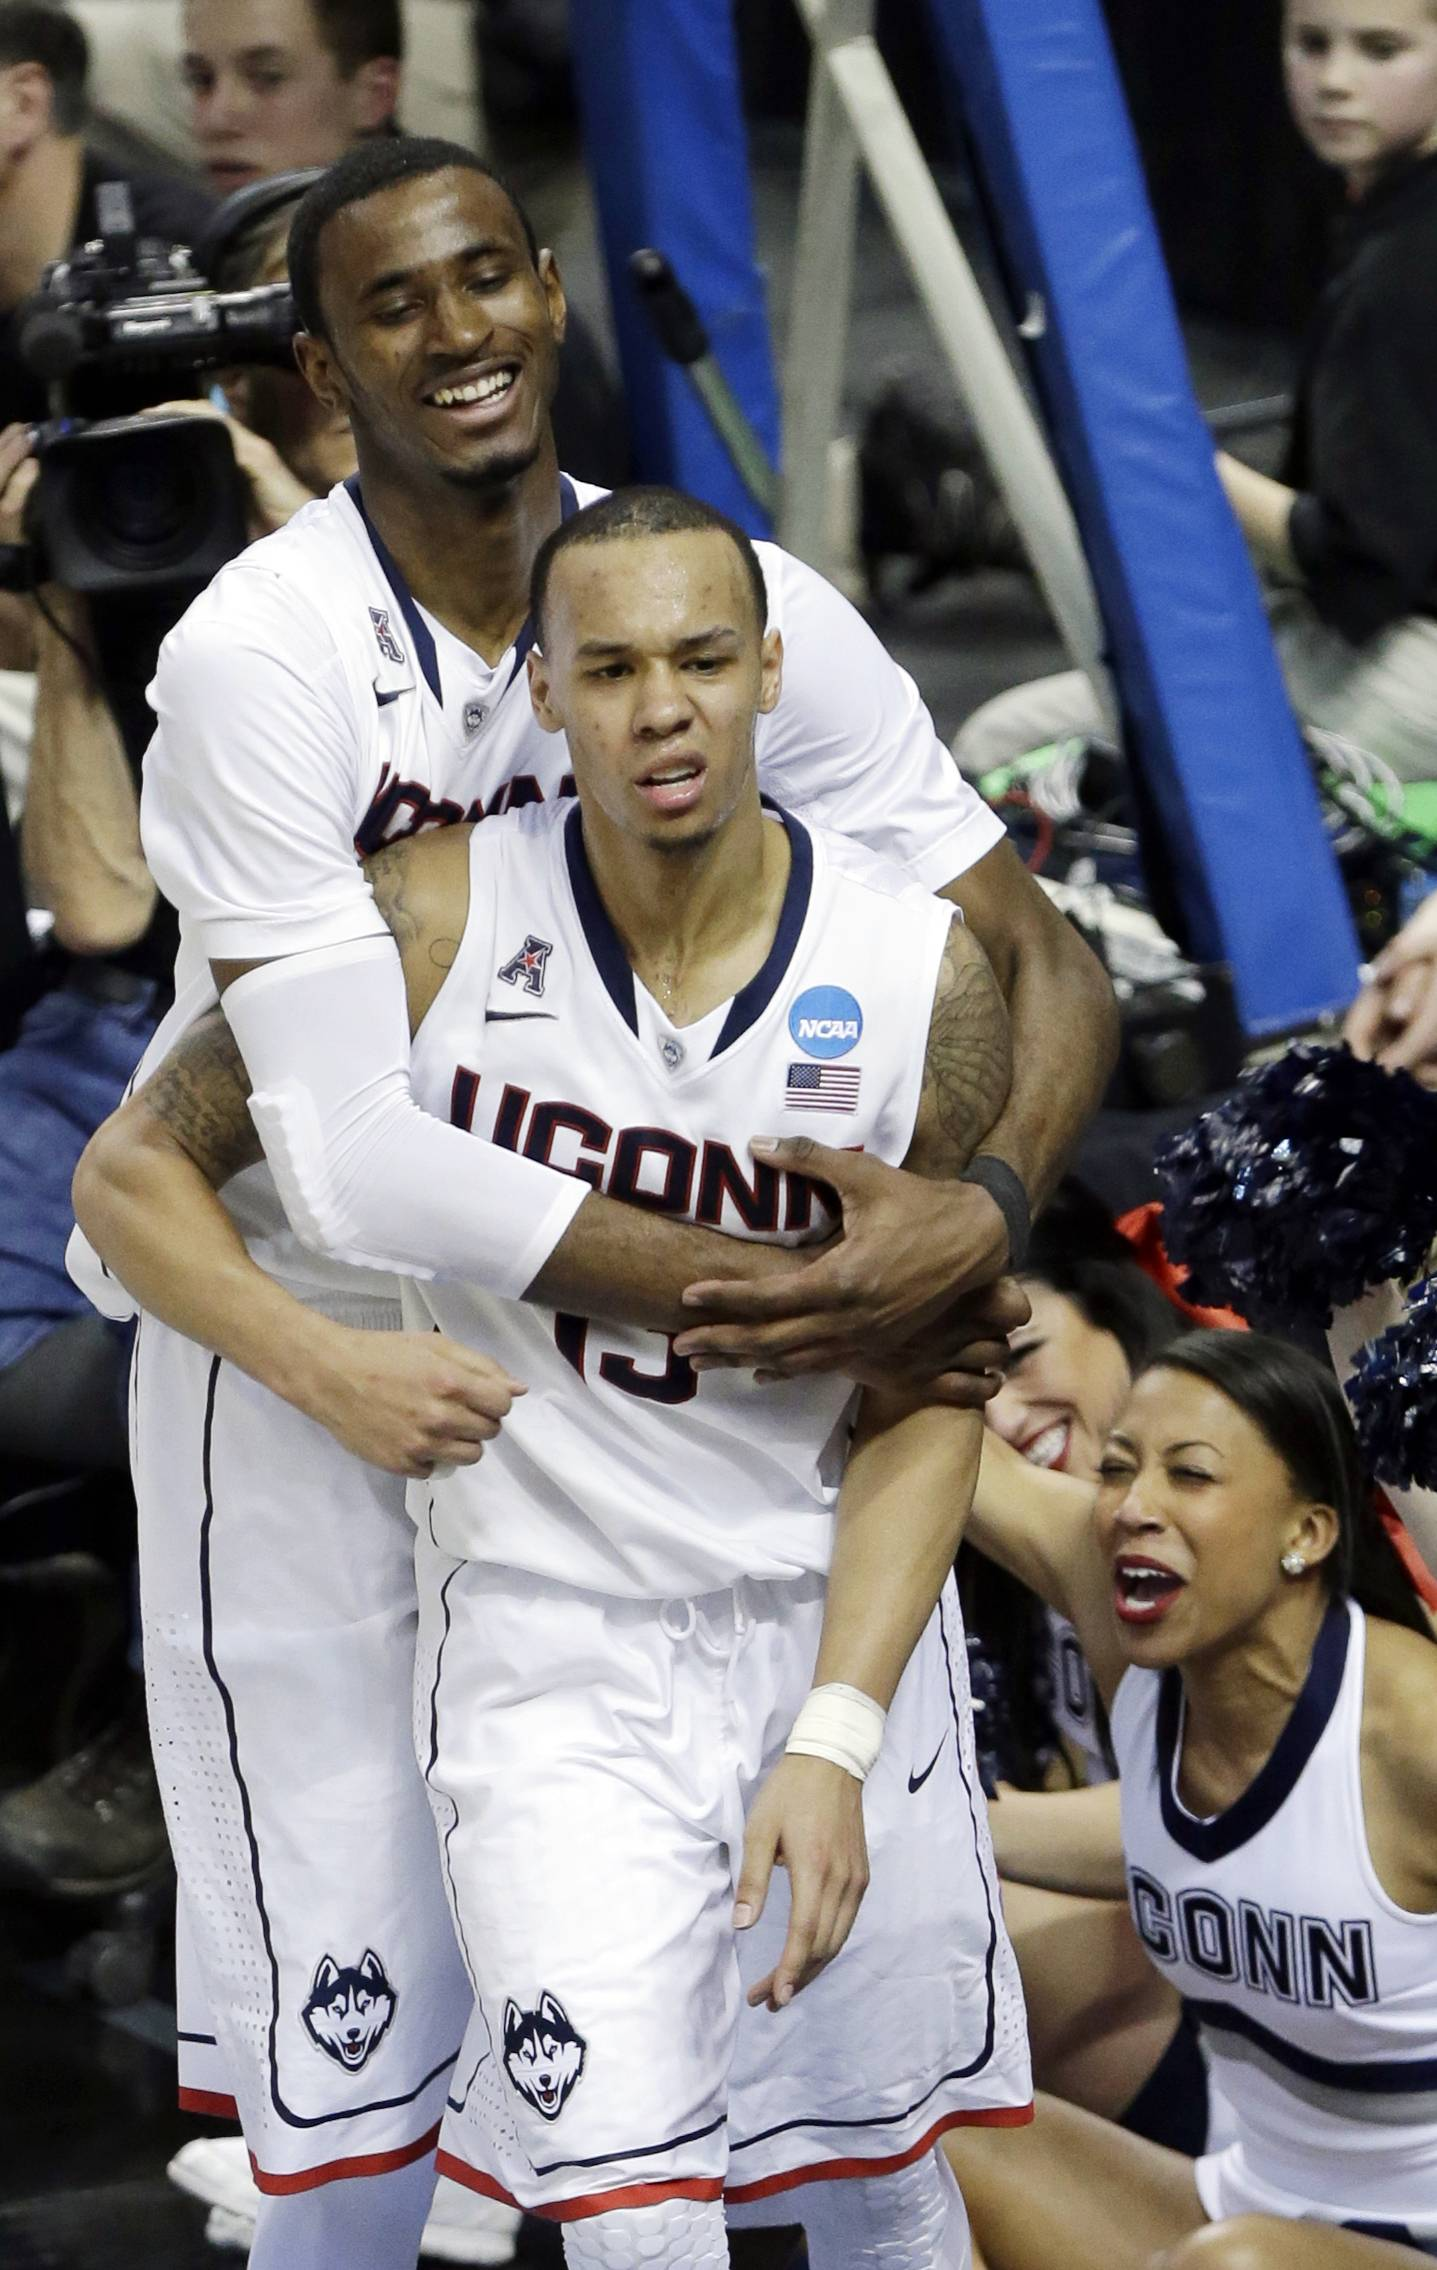 UConn outlasts Saint Joseph's in 89-81 OT win